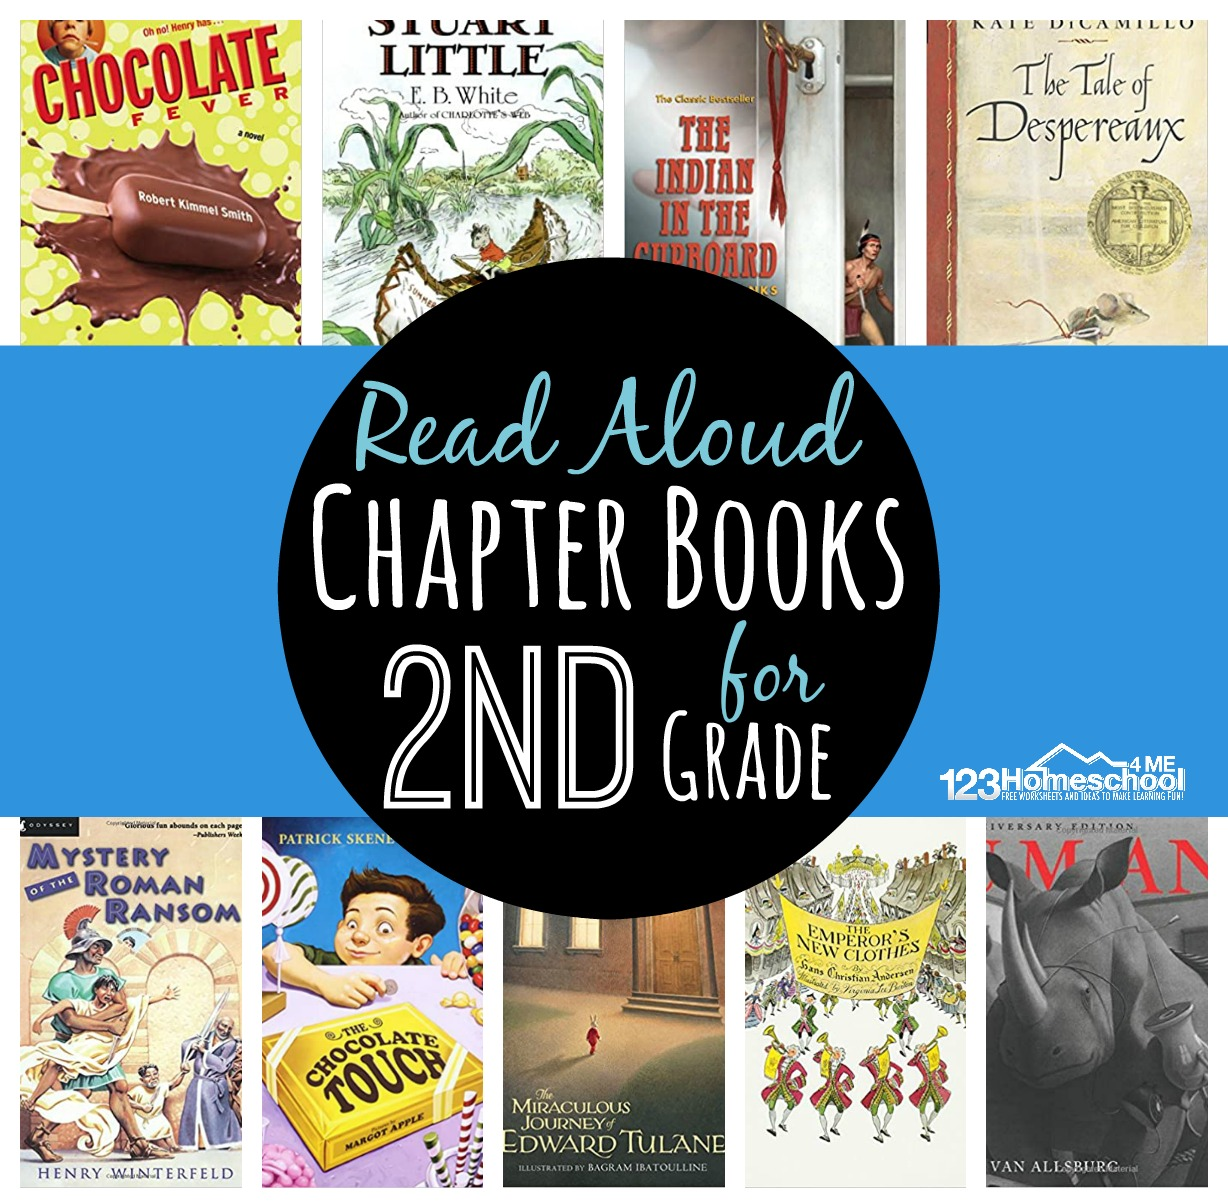 hight resolution of Read Aloud Chapter Books for 2nd Grade